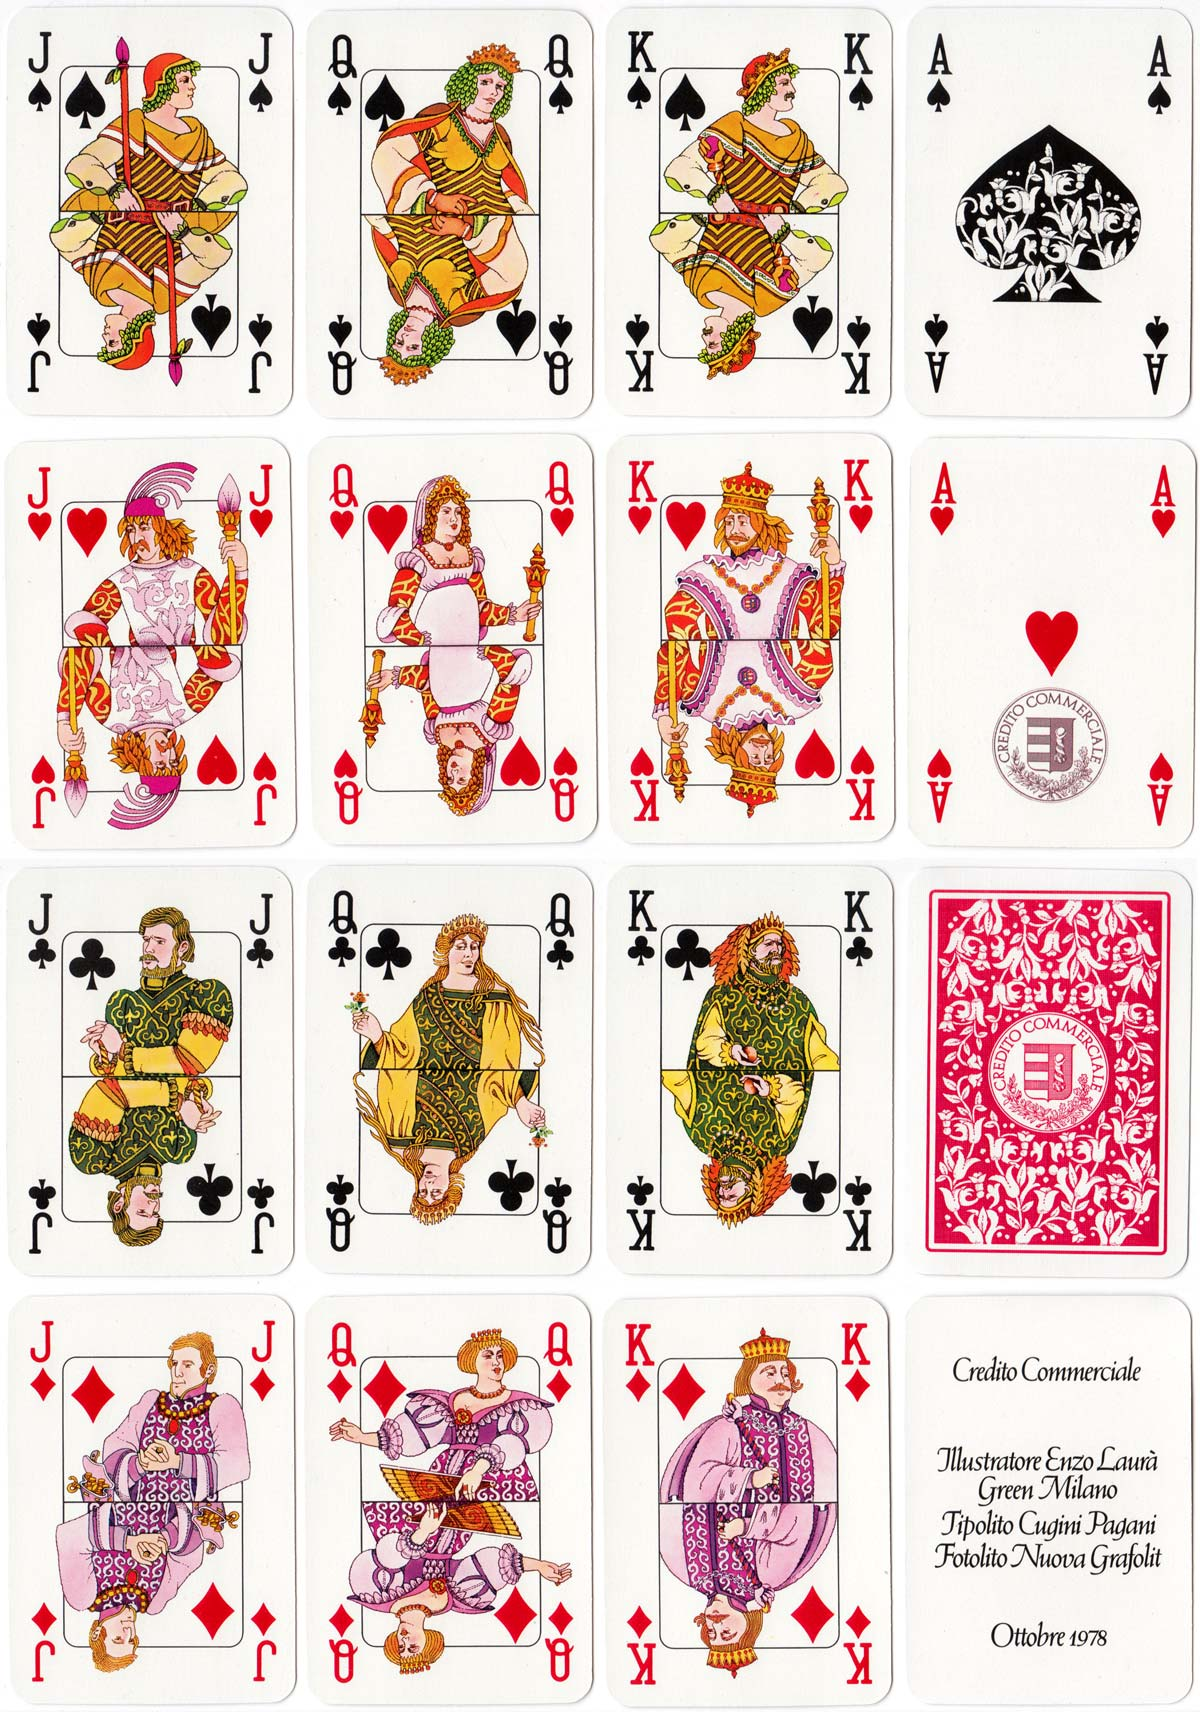 Playing cards designed by Enzo Laurà for Credito Commerciale, 1978